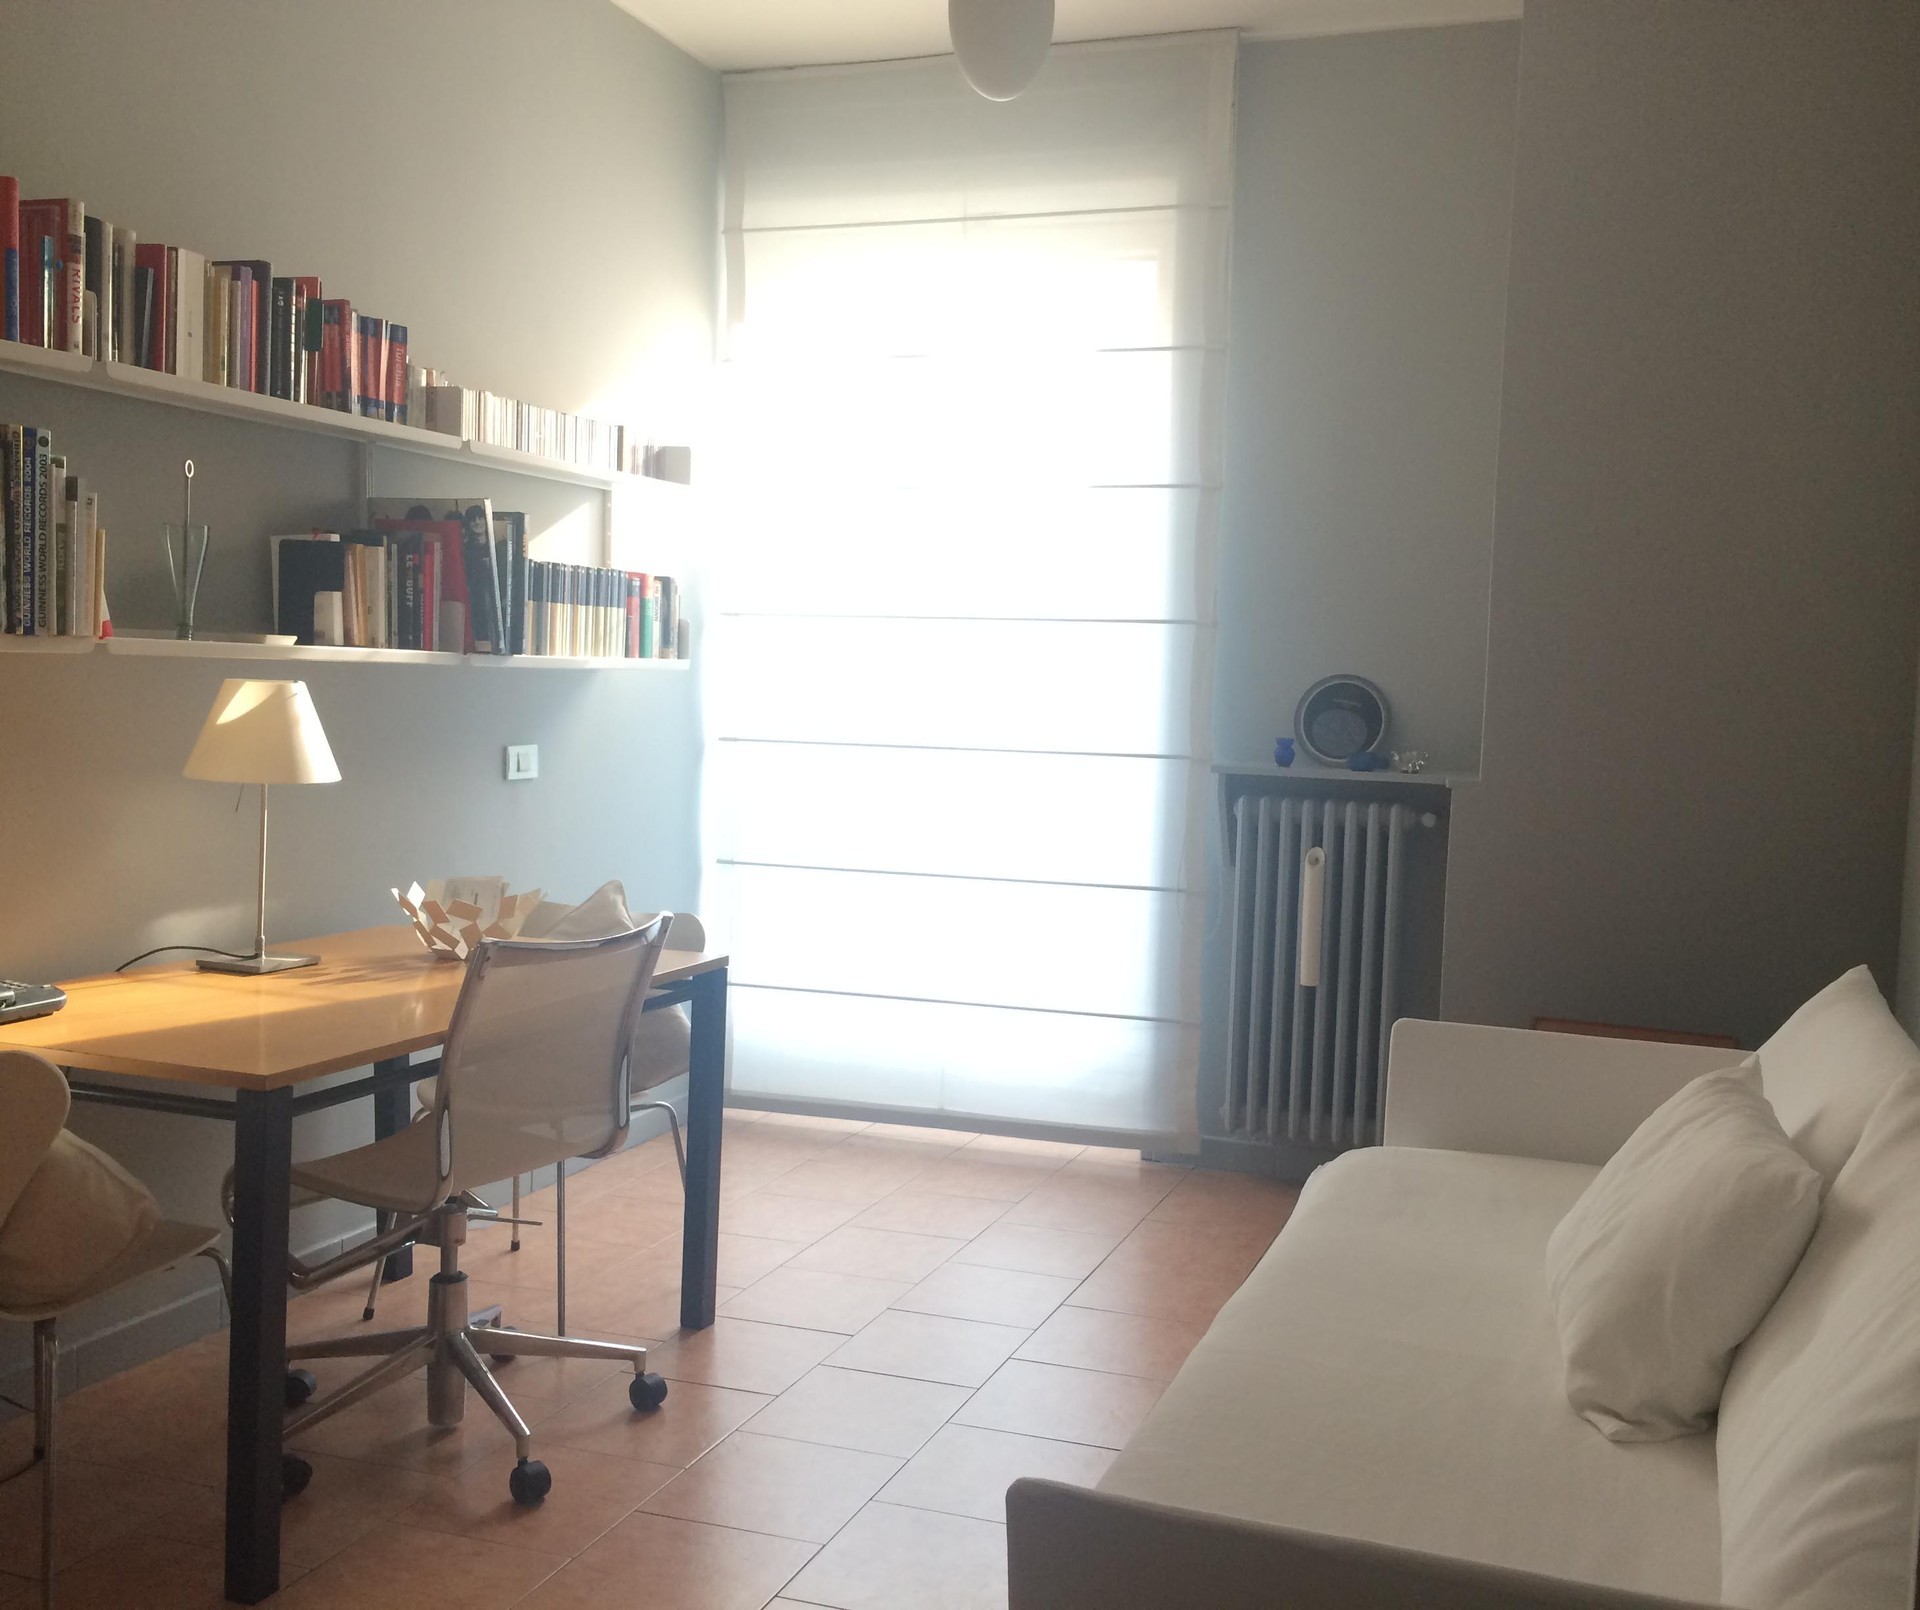 Single Bedrooms For Rent: Single Room+private Bathroom In A Bright Large Apartment